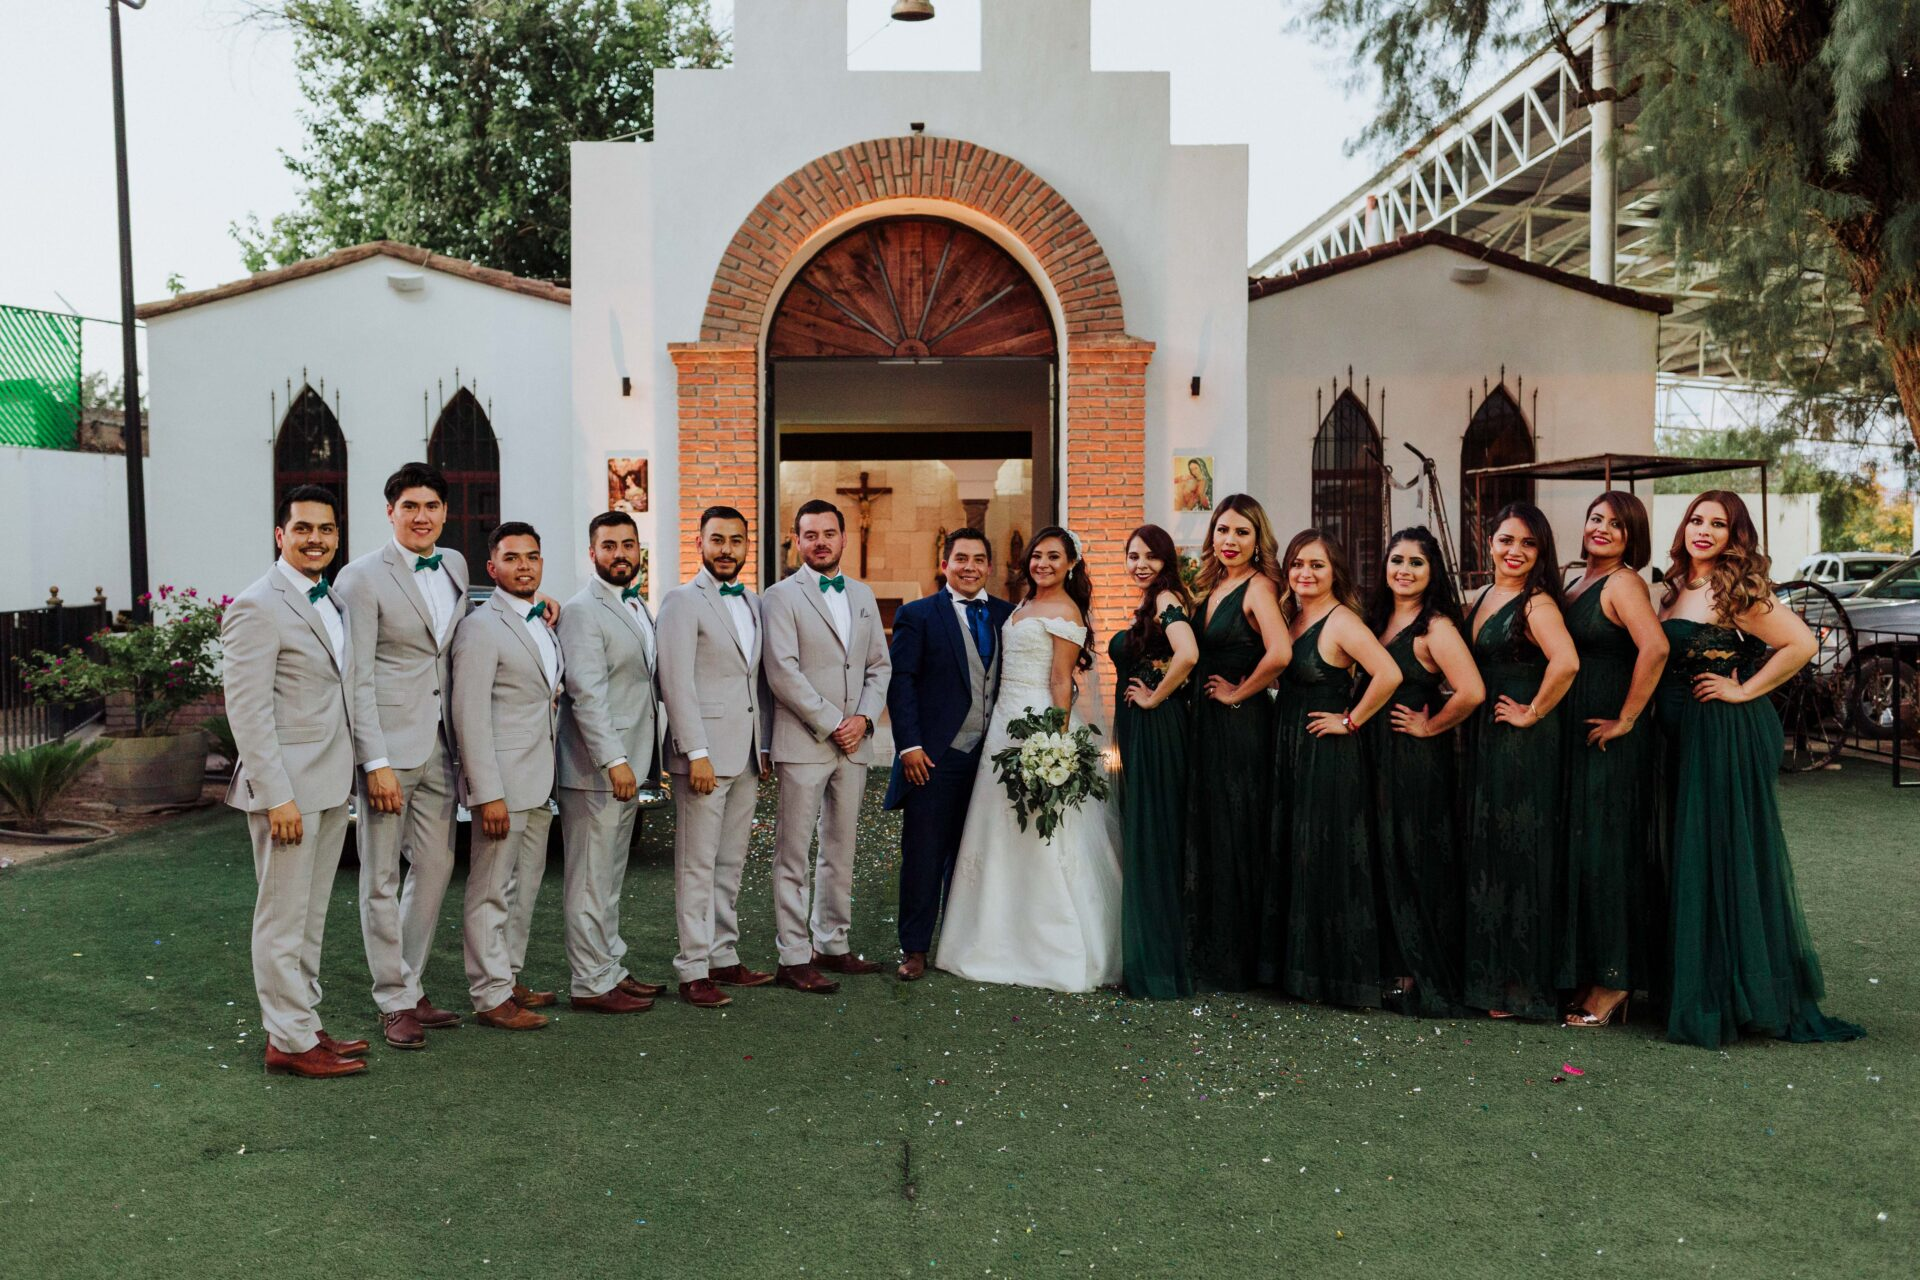 javier_noriega_fotografo_bodas_torreon_coahuila_zacatecas_wedding_photographer50a